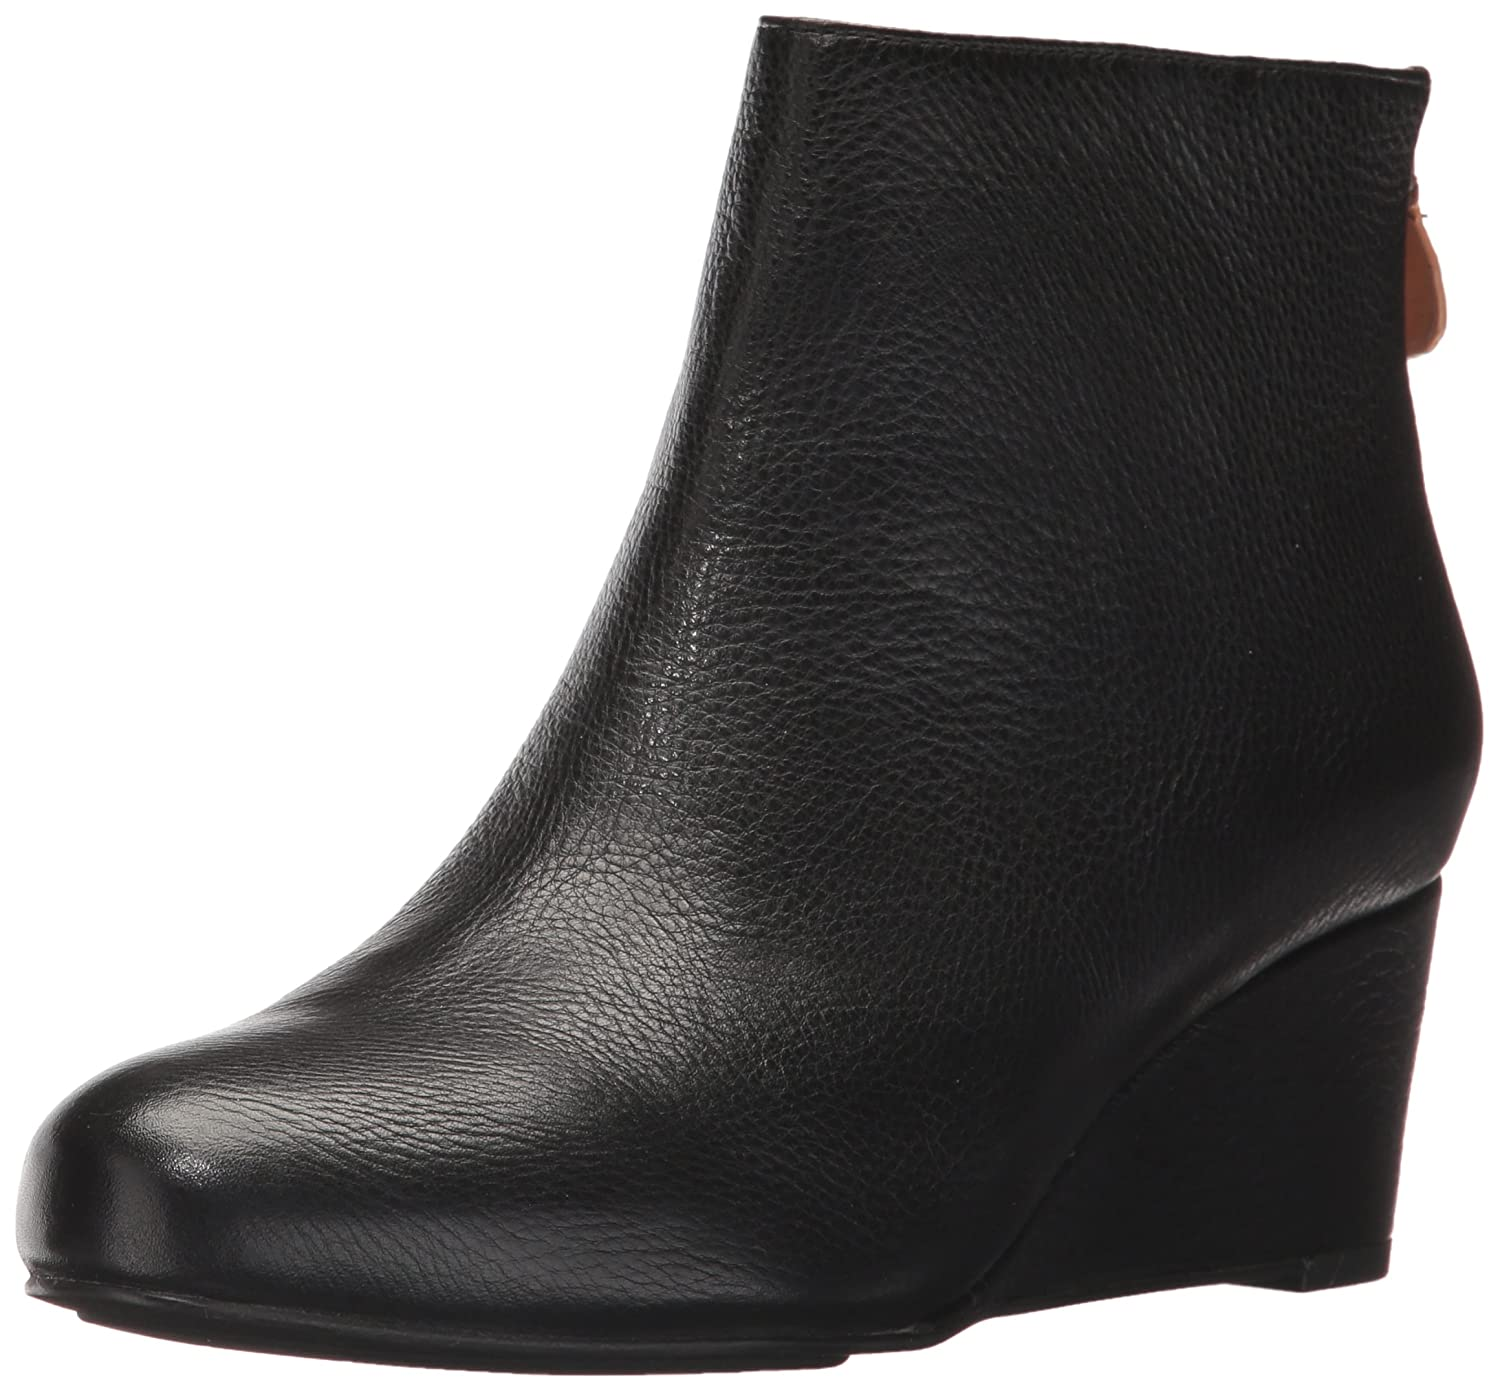 Gentle Souls by Kenneth Cole Women's Vicki Low Wedge Bootie Leather Ankle Bootie B06XX7Q9Z6 11 M US|Black